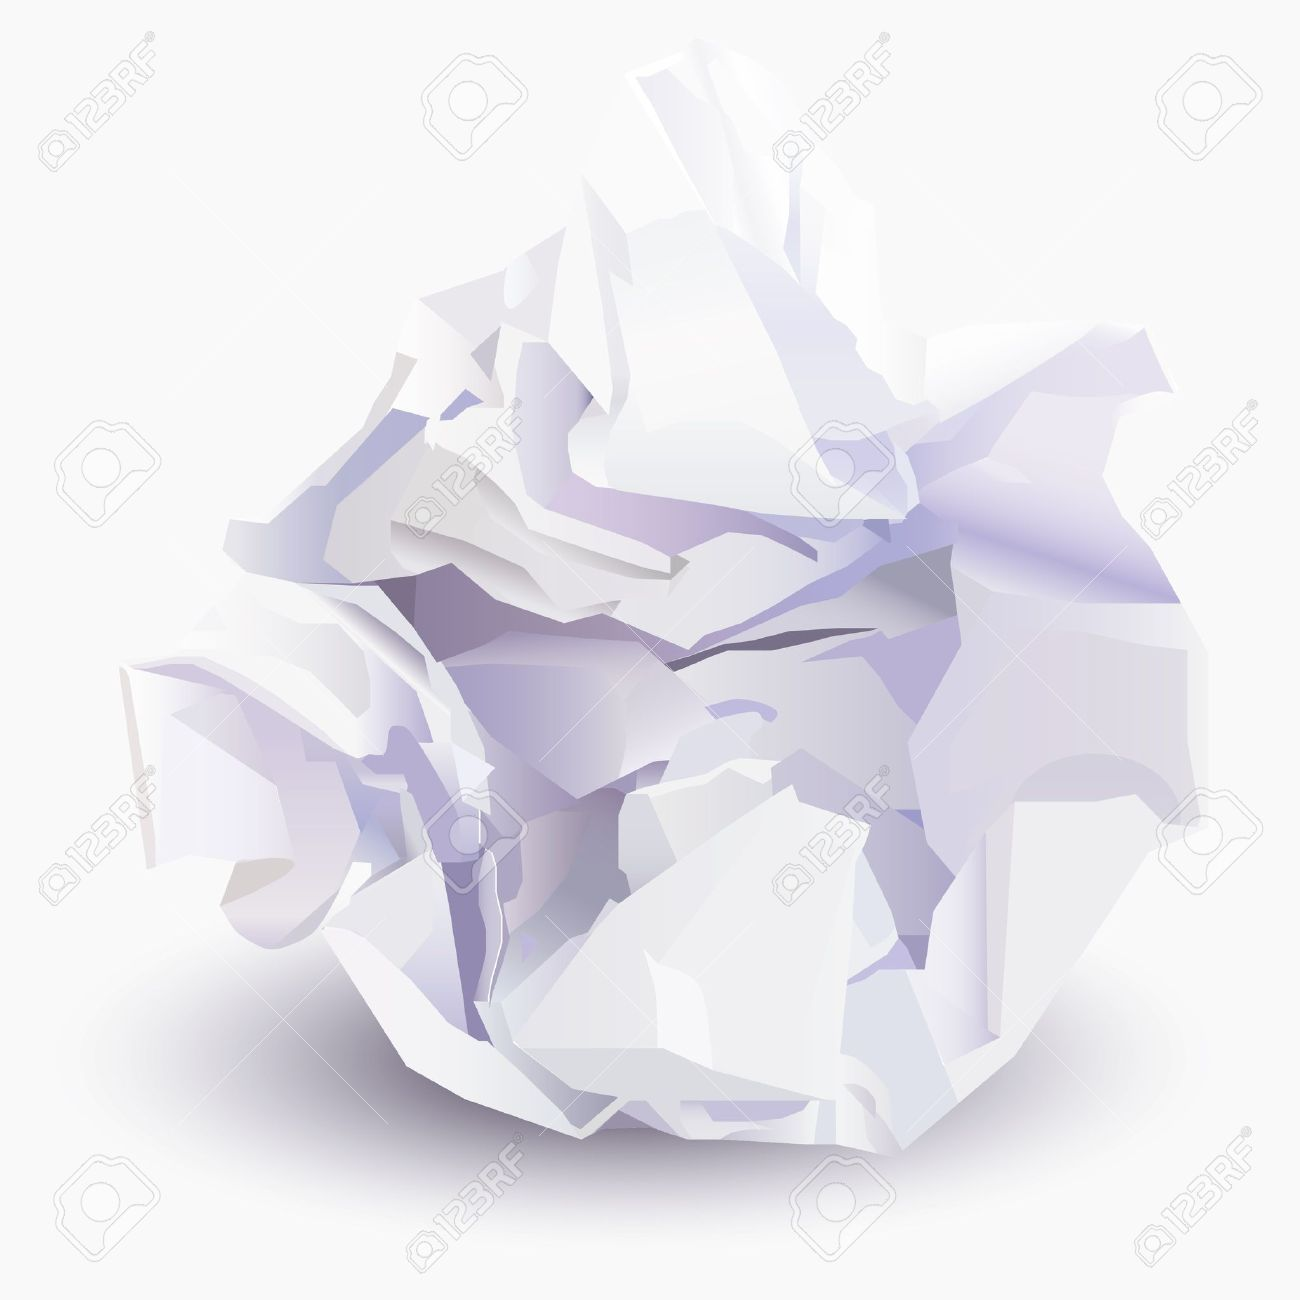 Crumpled paper clipart.